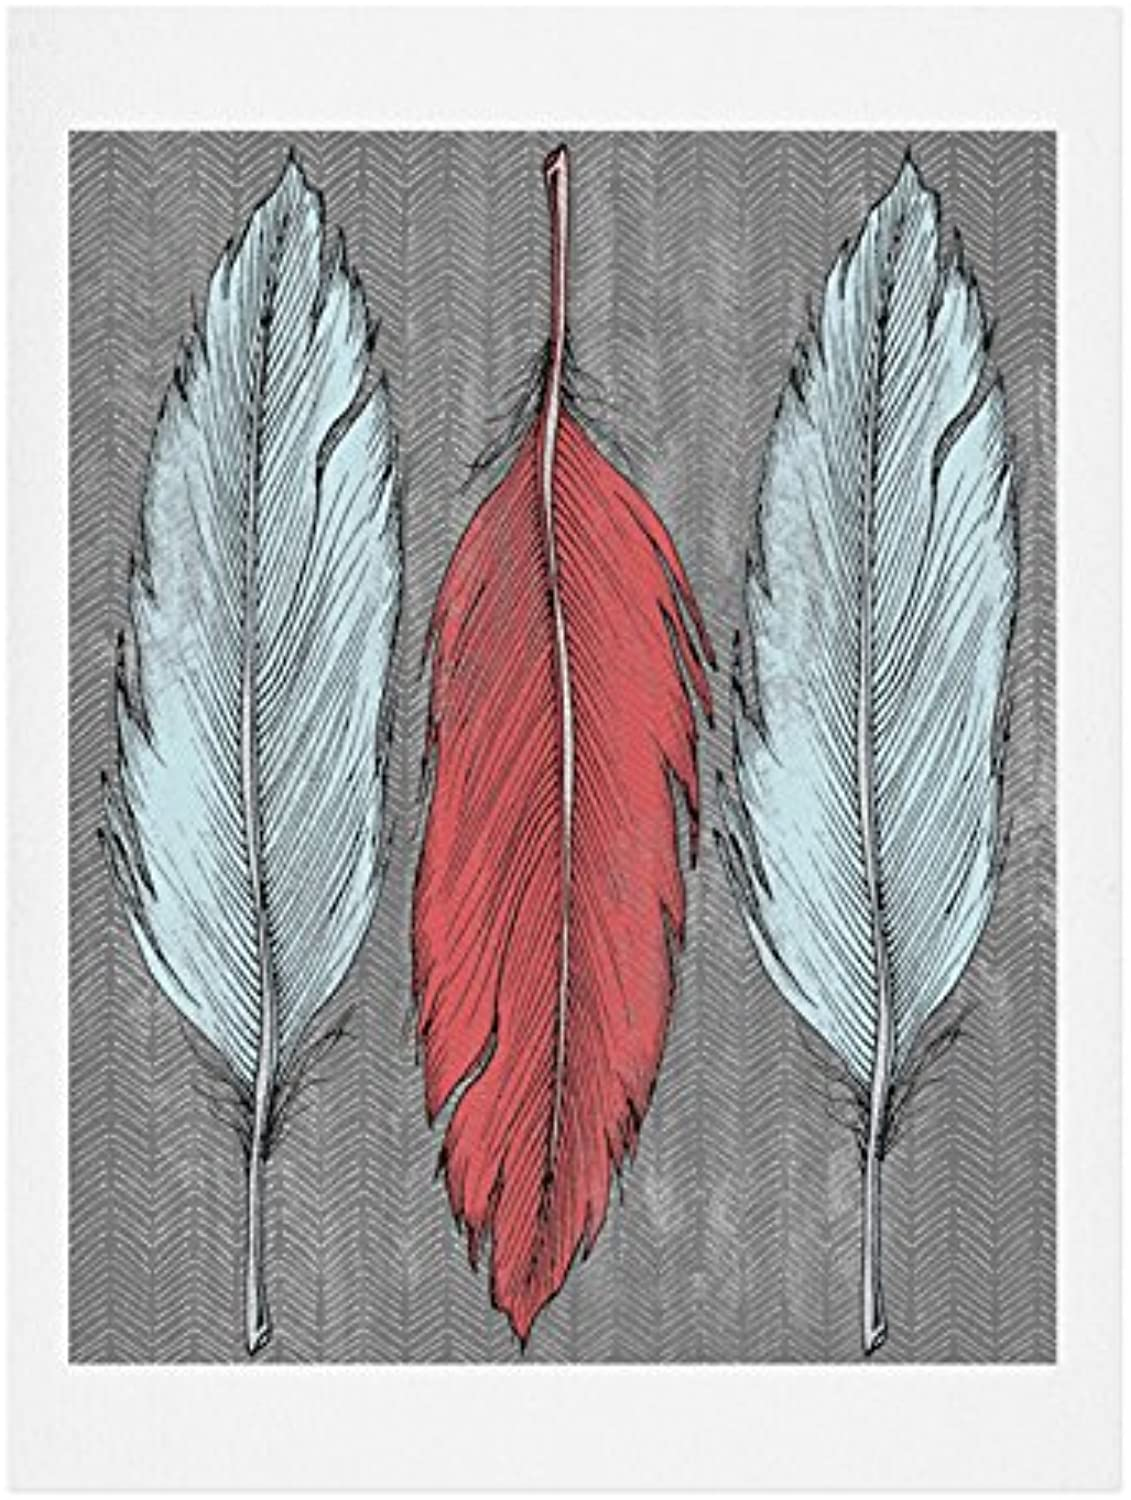 DENY Designs Wesley Bird Feathered Art Print, 18Inch by 24Inch